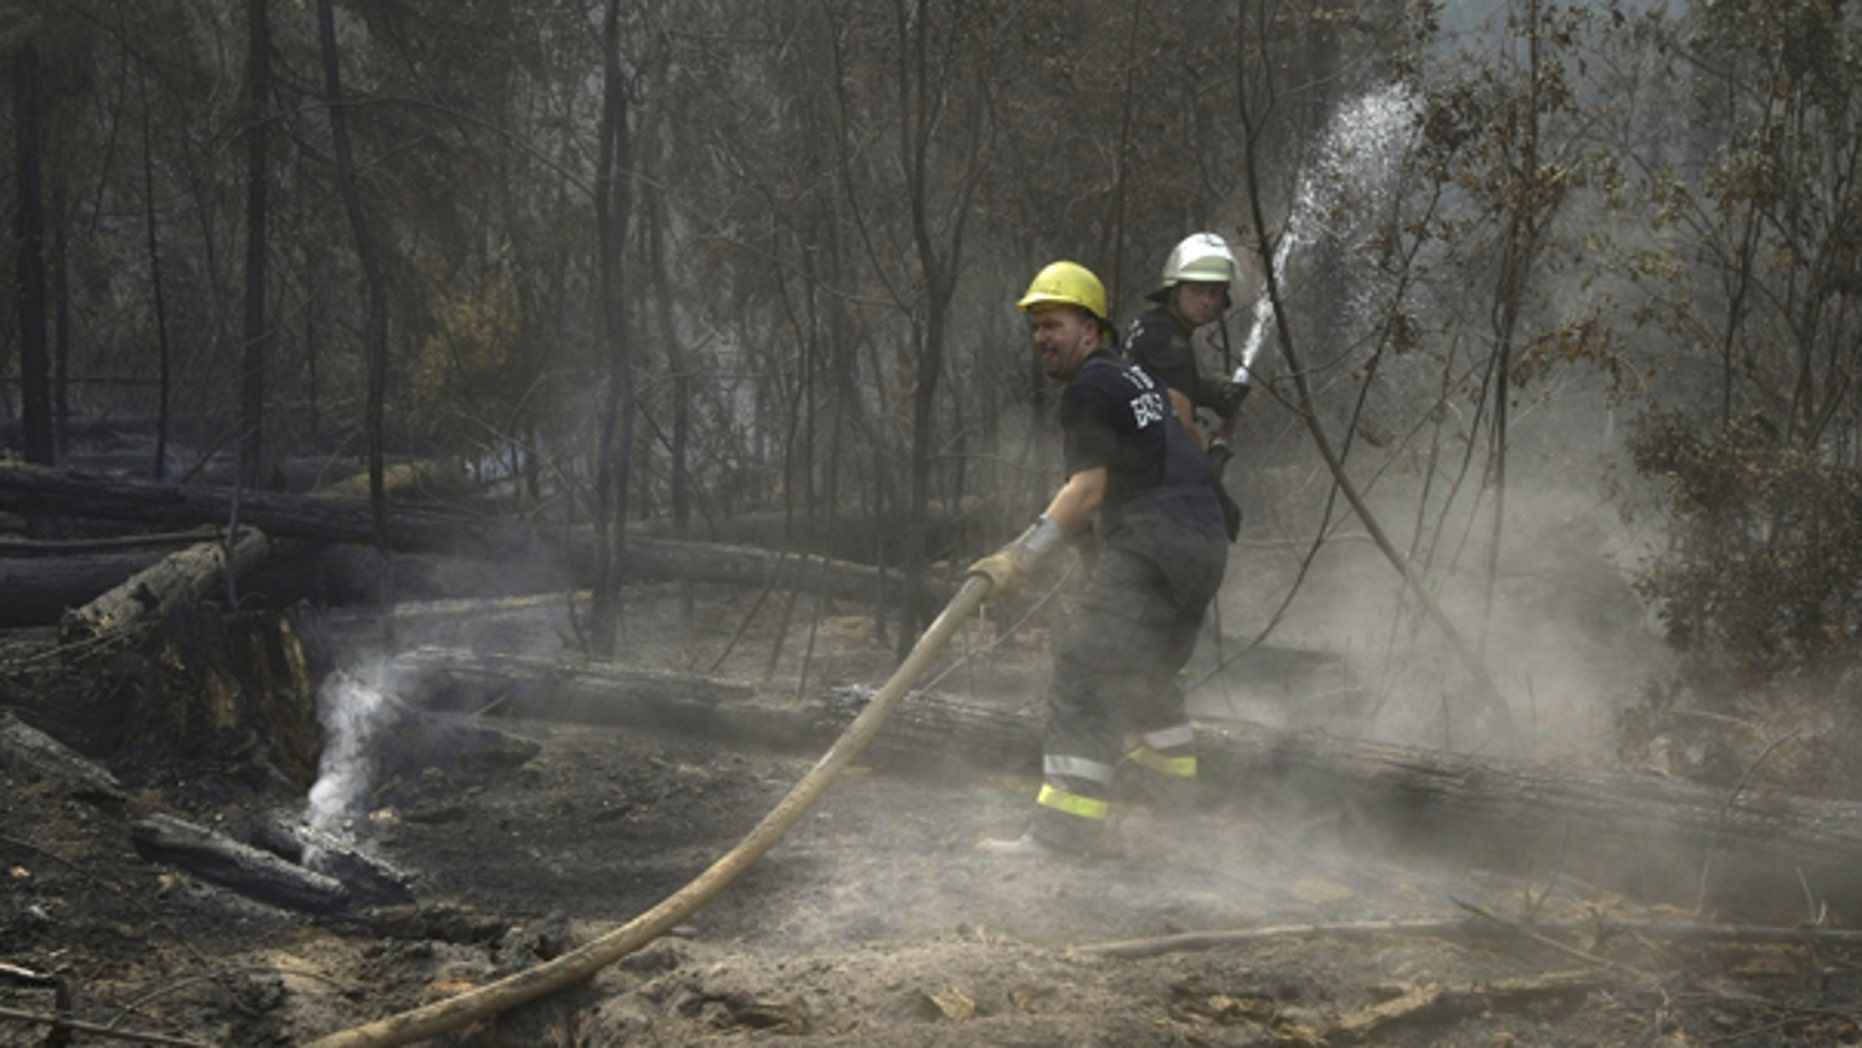 Aug. 10: Unidentified Bulgarian fire fighters hose water onto smoldering tree trunks in a forest in the Noginsk district some 70 km east of Moscow. Hundreds of forest and peat bog fires have ignited amid the country's most intense heat wave in 130 years of record-keeping.